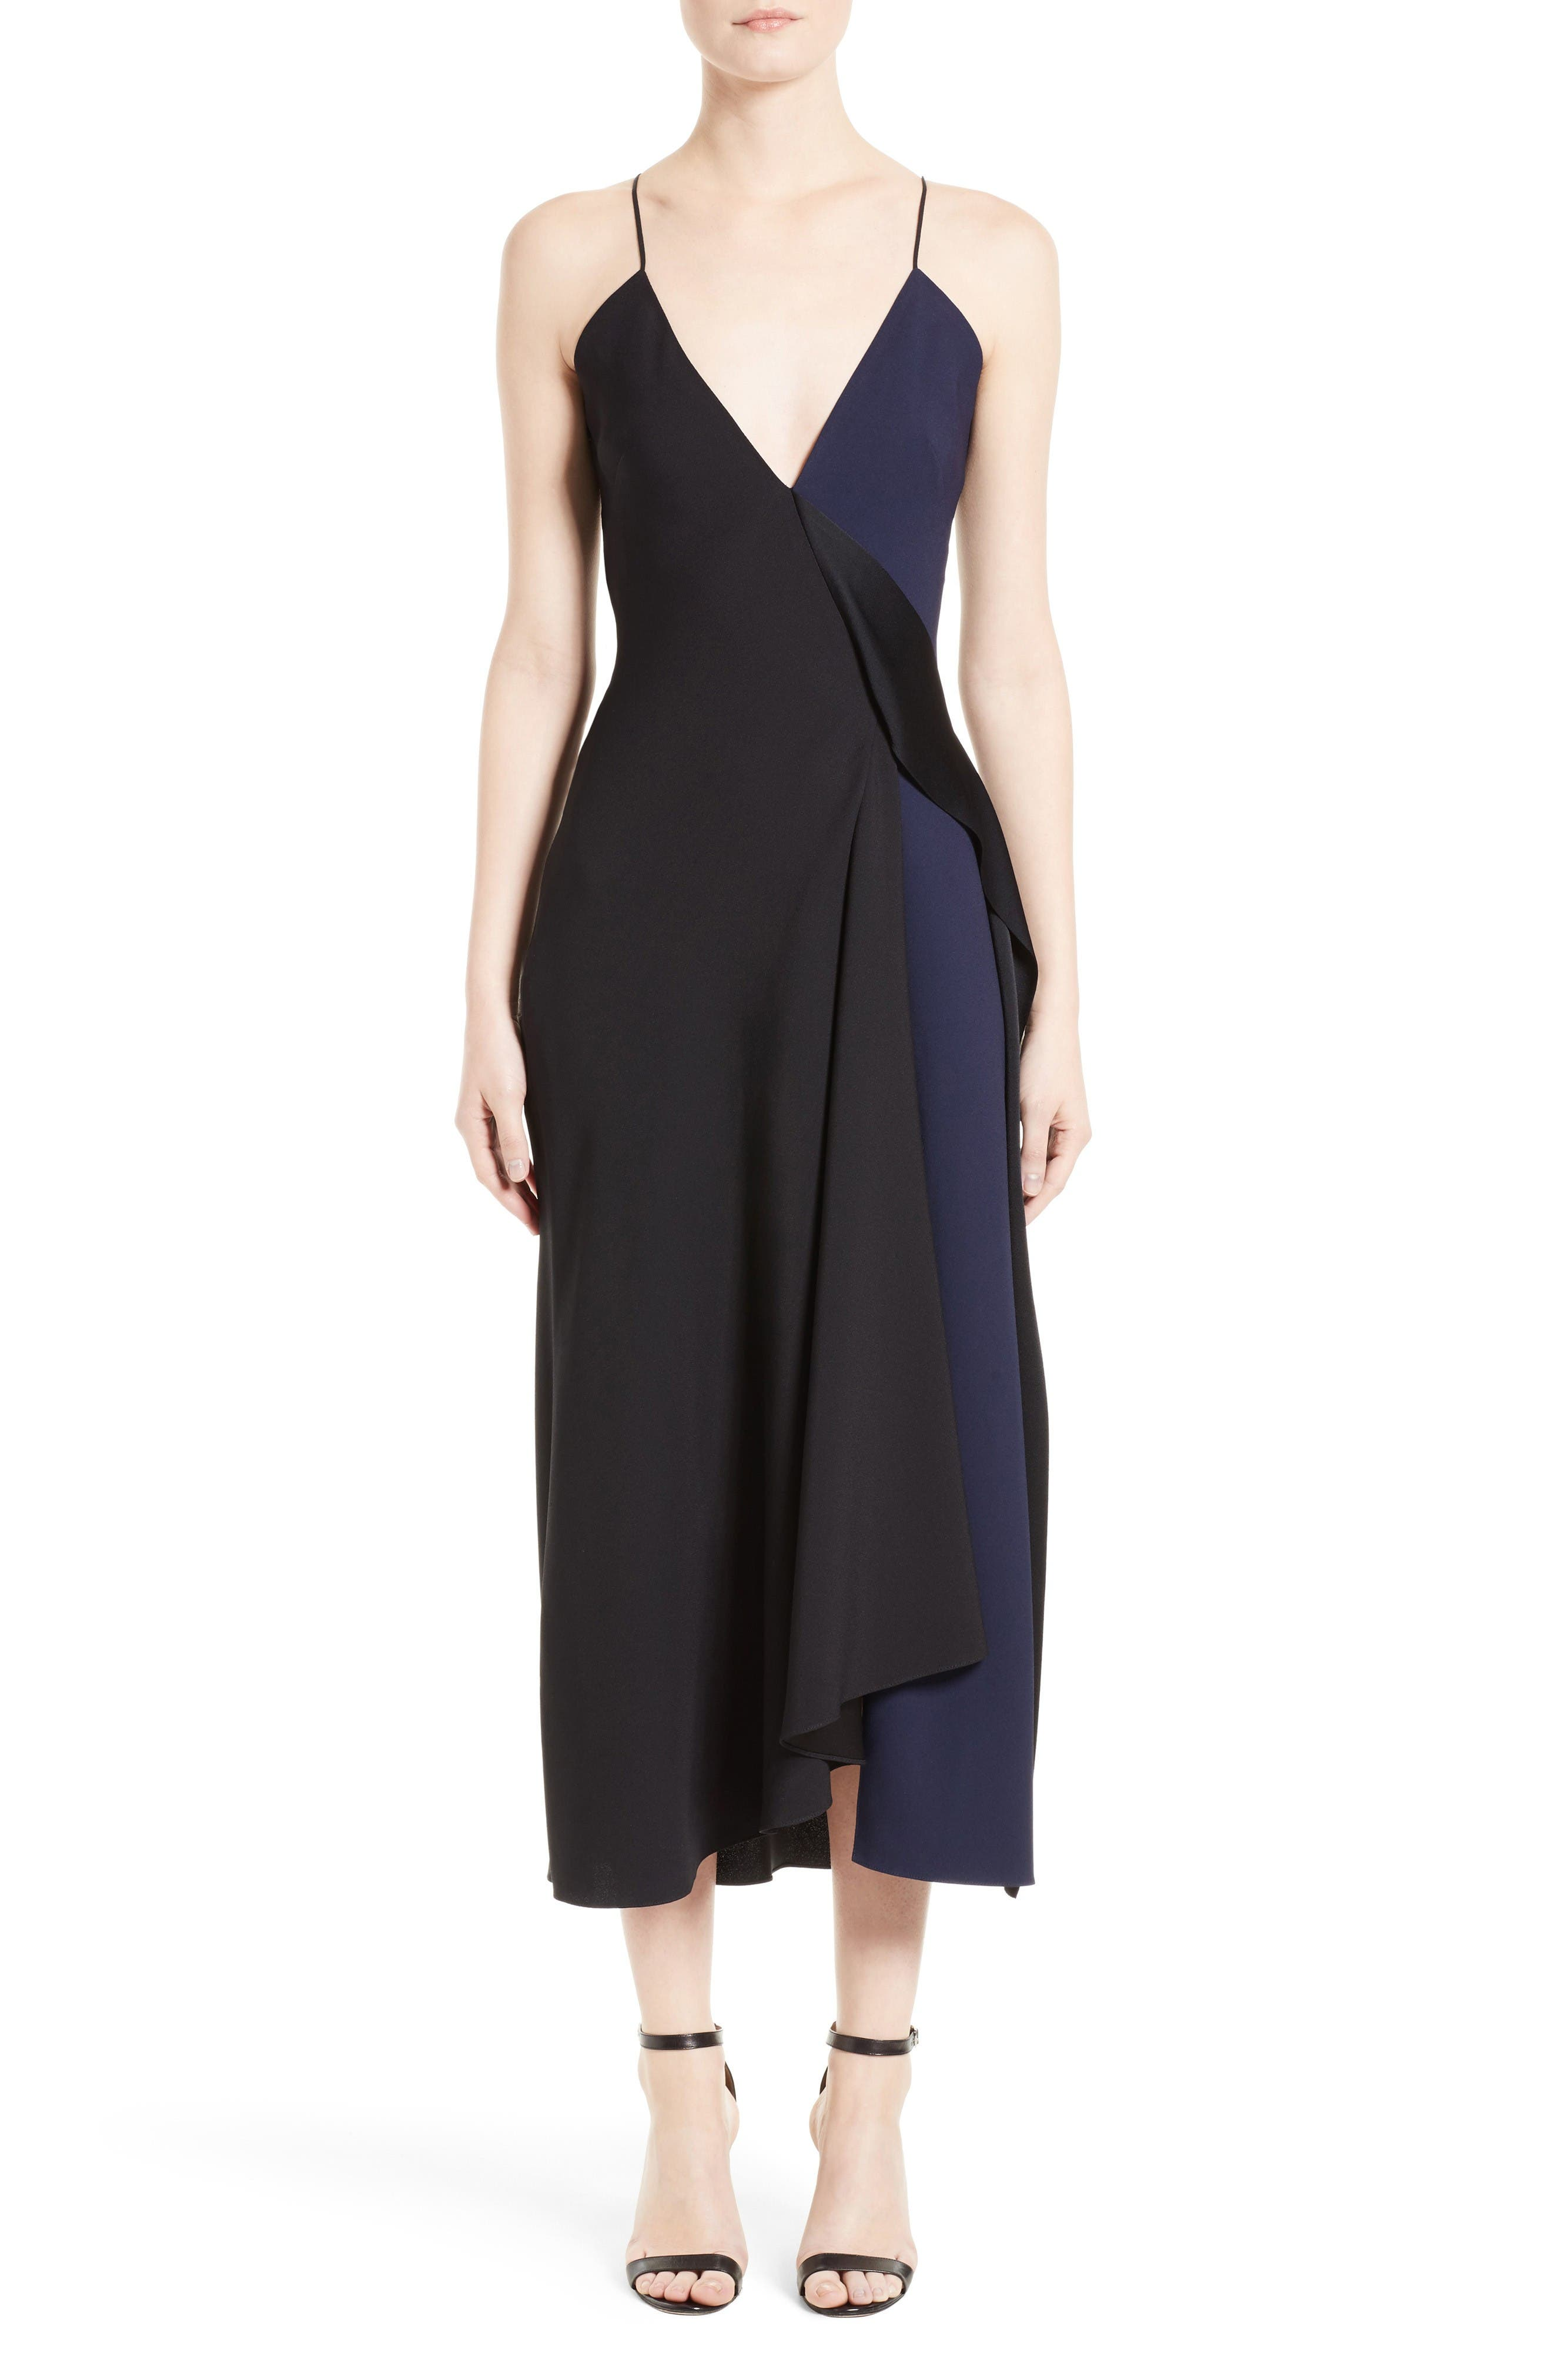 Victoria Beckham Asymmetrical Camisole Dress